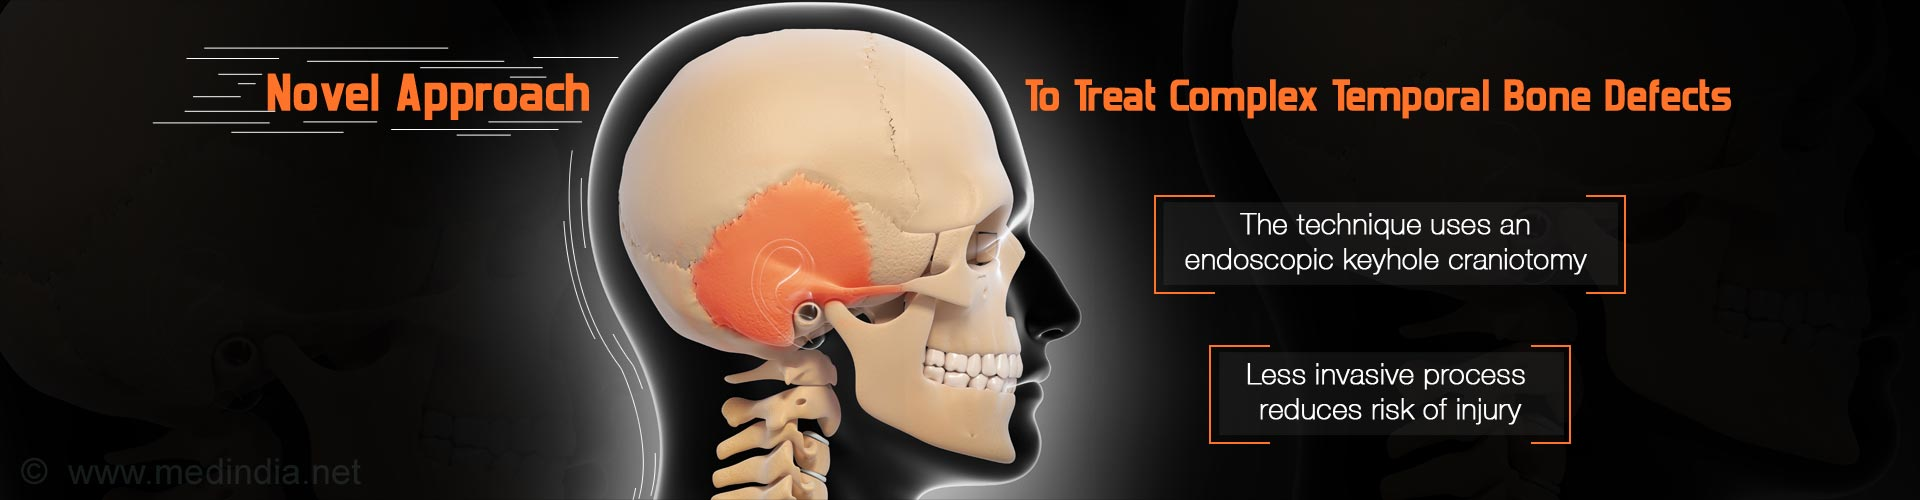 Groundbreaking Approach To Treat Complex Temporal Bone Defects